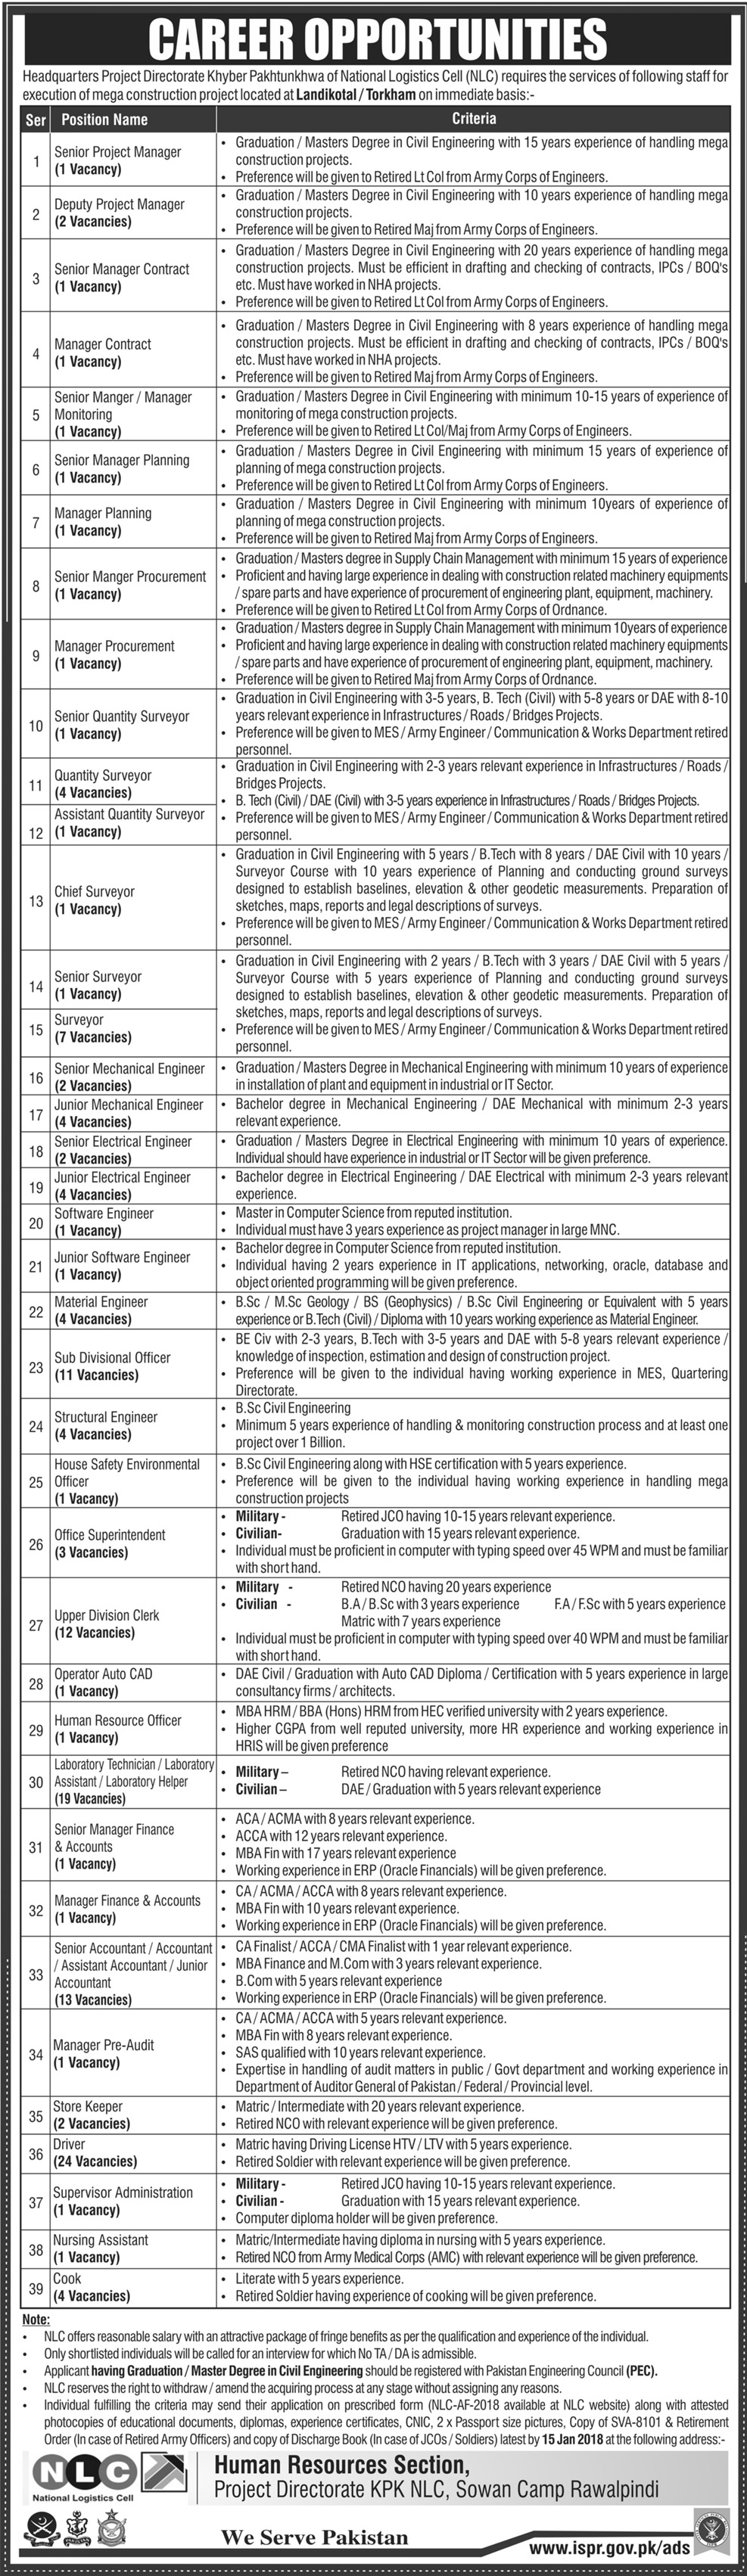 KPK National Logistic Cell 143 Jobs 31 December 2017 Daily Mashriq Newspaper